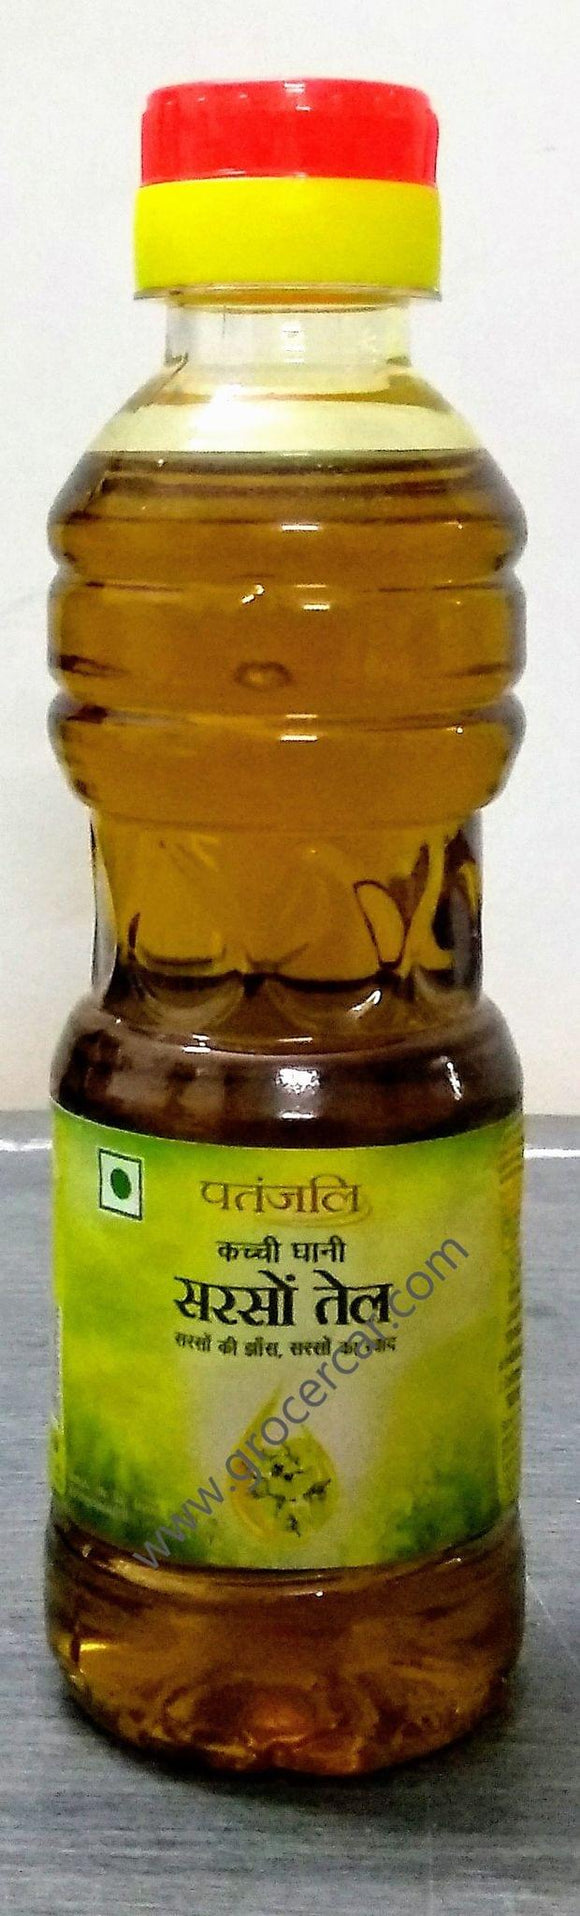 Patanjali kachi ghani Mustard Oil Bottle